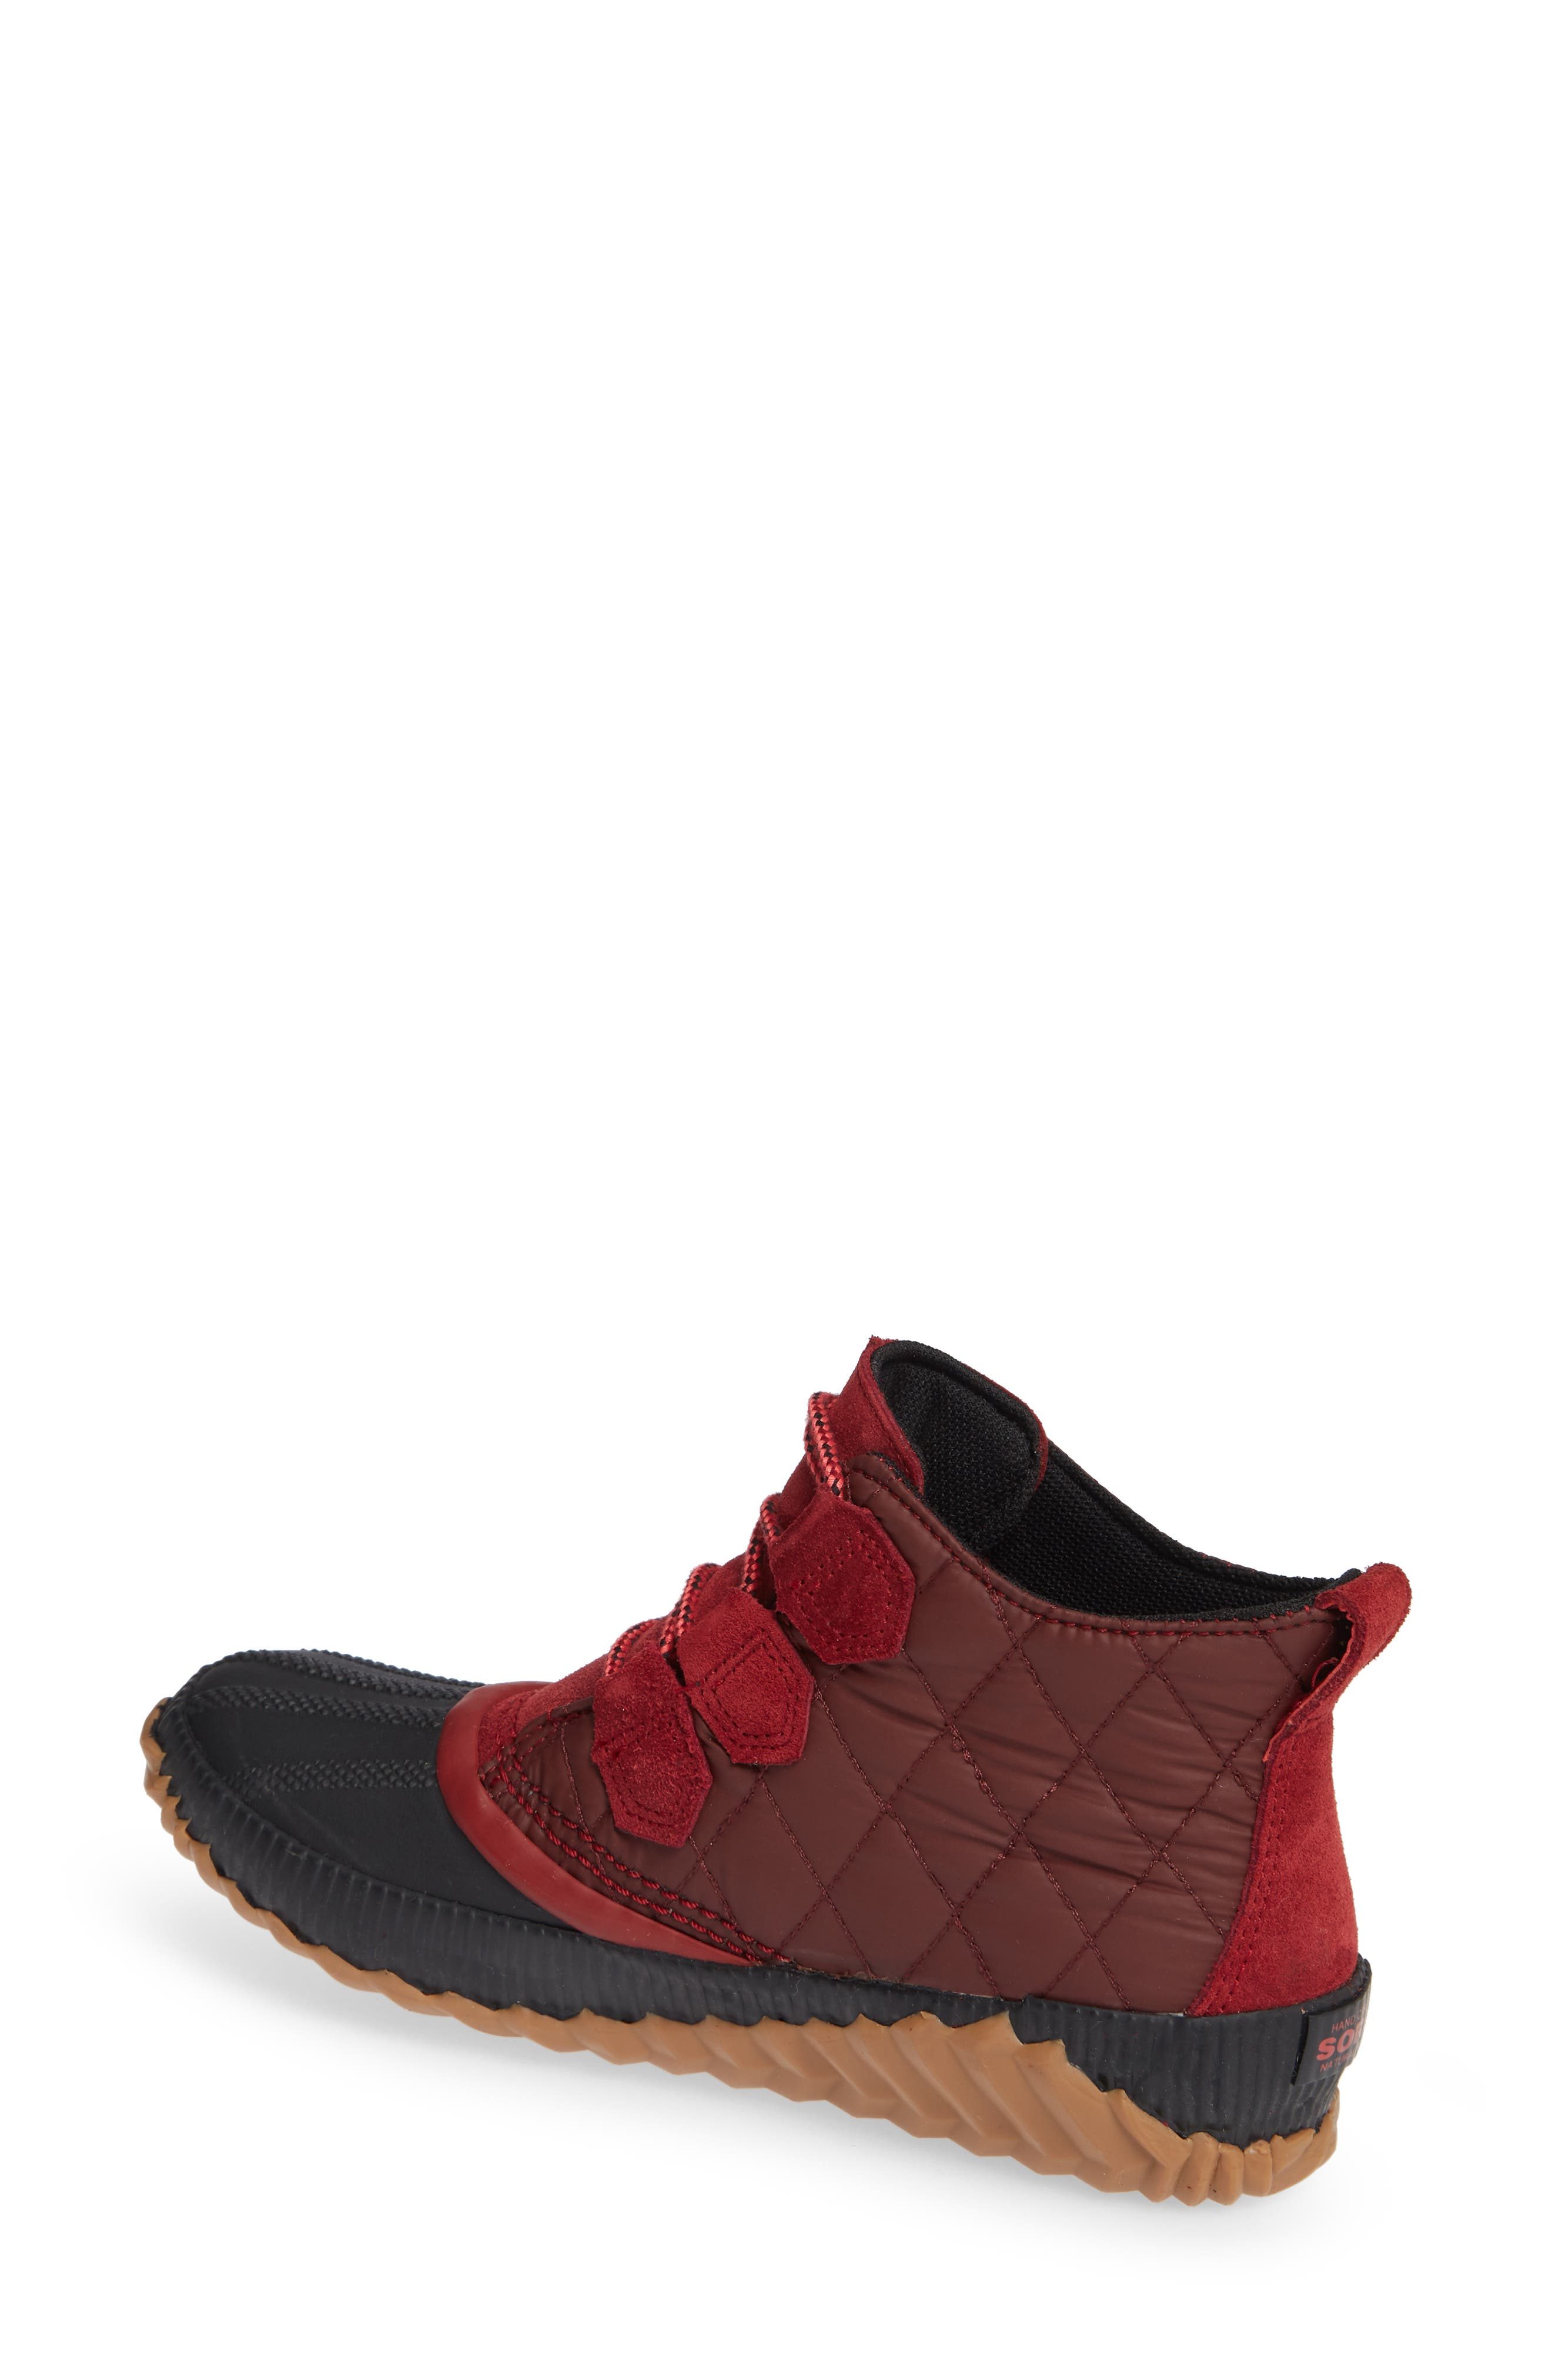 Out 'N' About Plus Camp Waterproof Bootie,                             Alternate thumbnail 2, color,                             CAMP/ RED ELEMENT